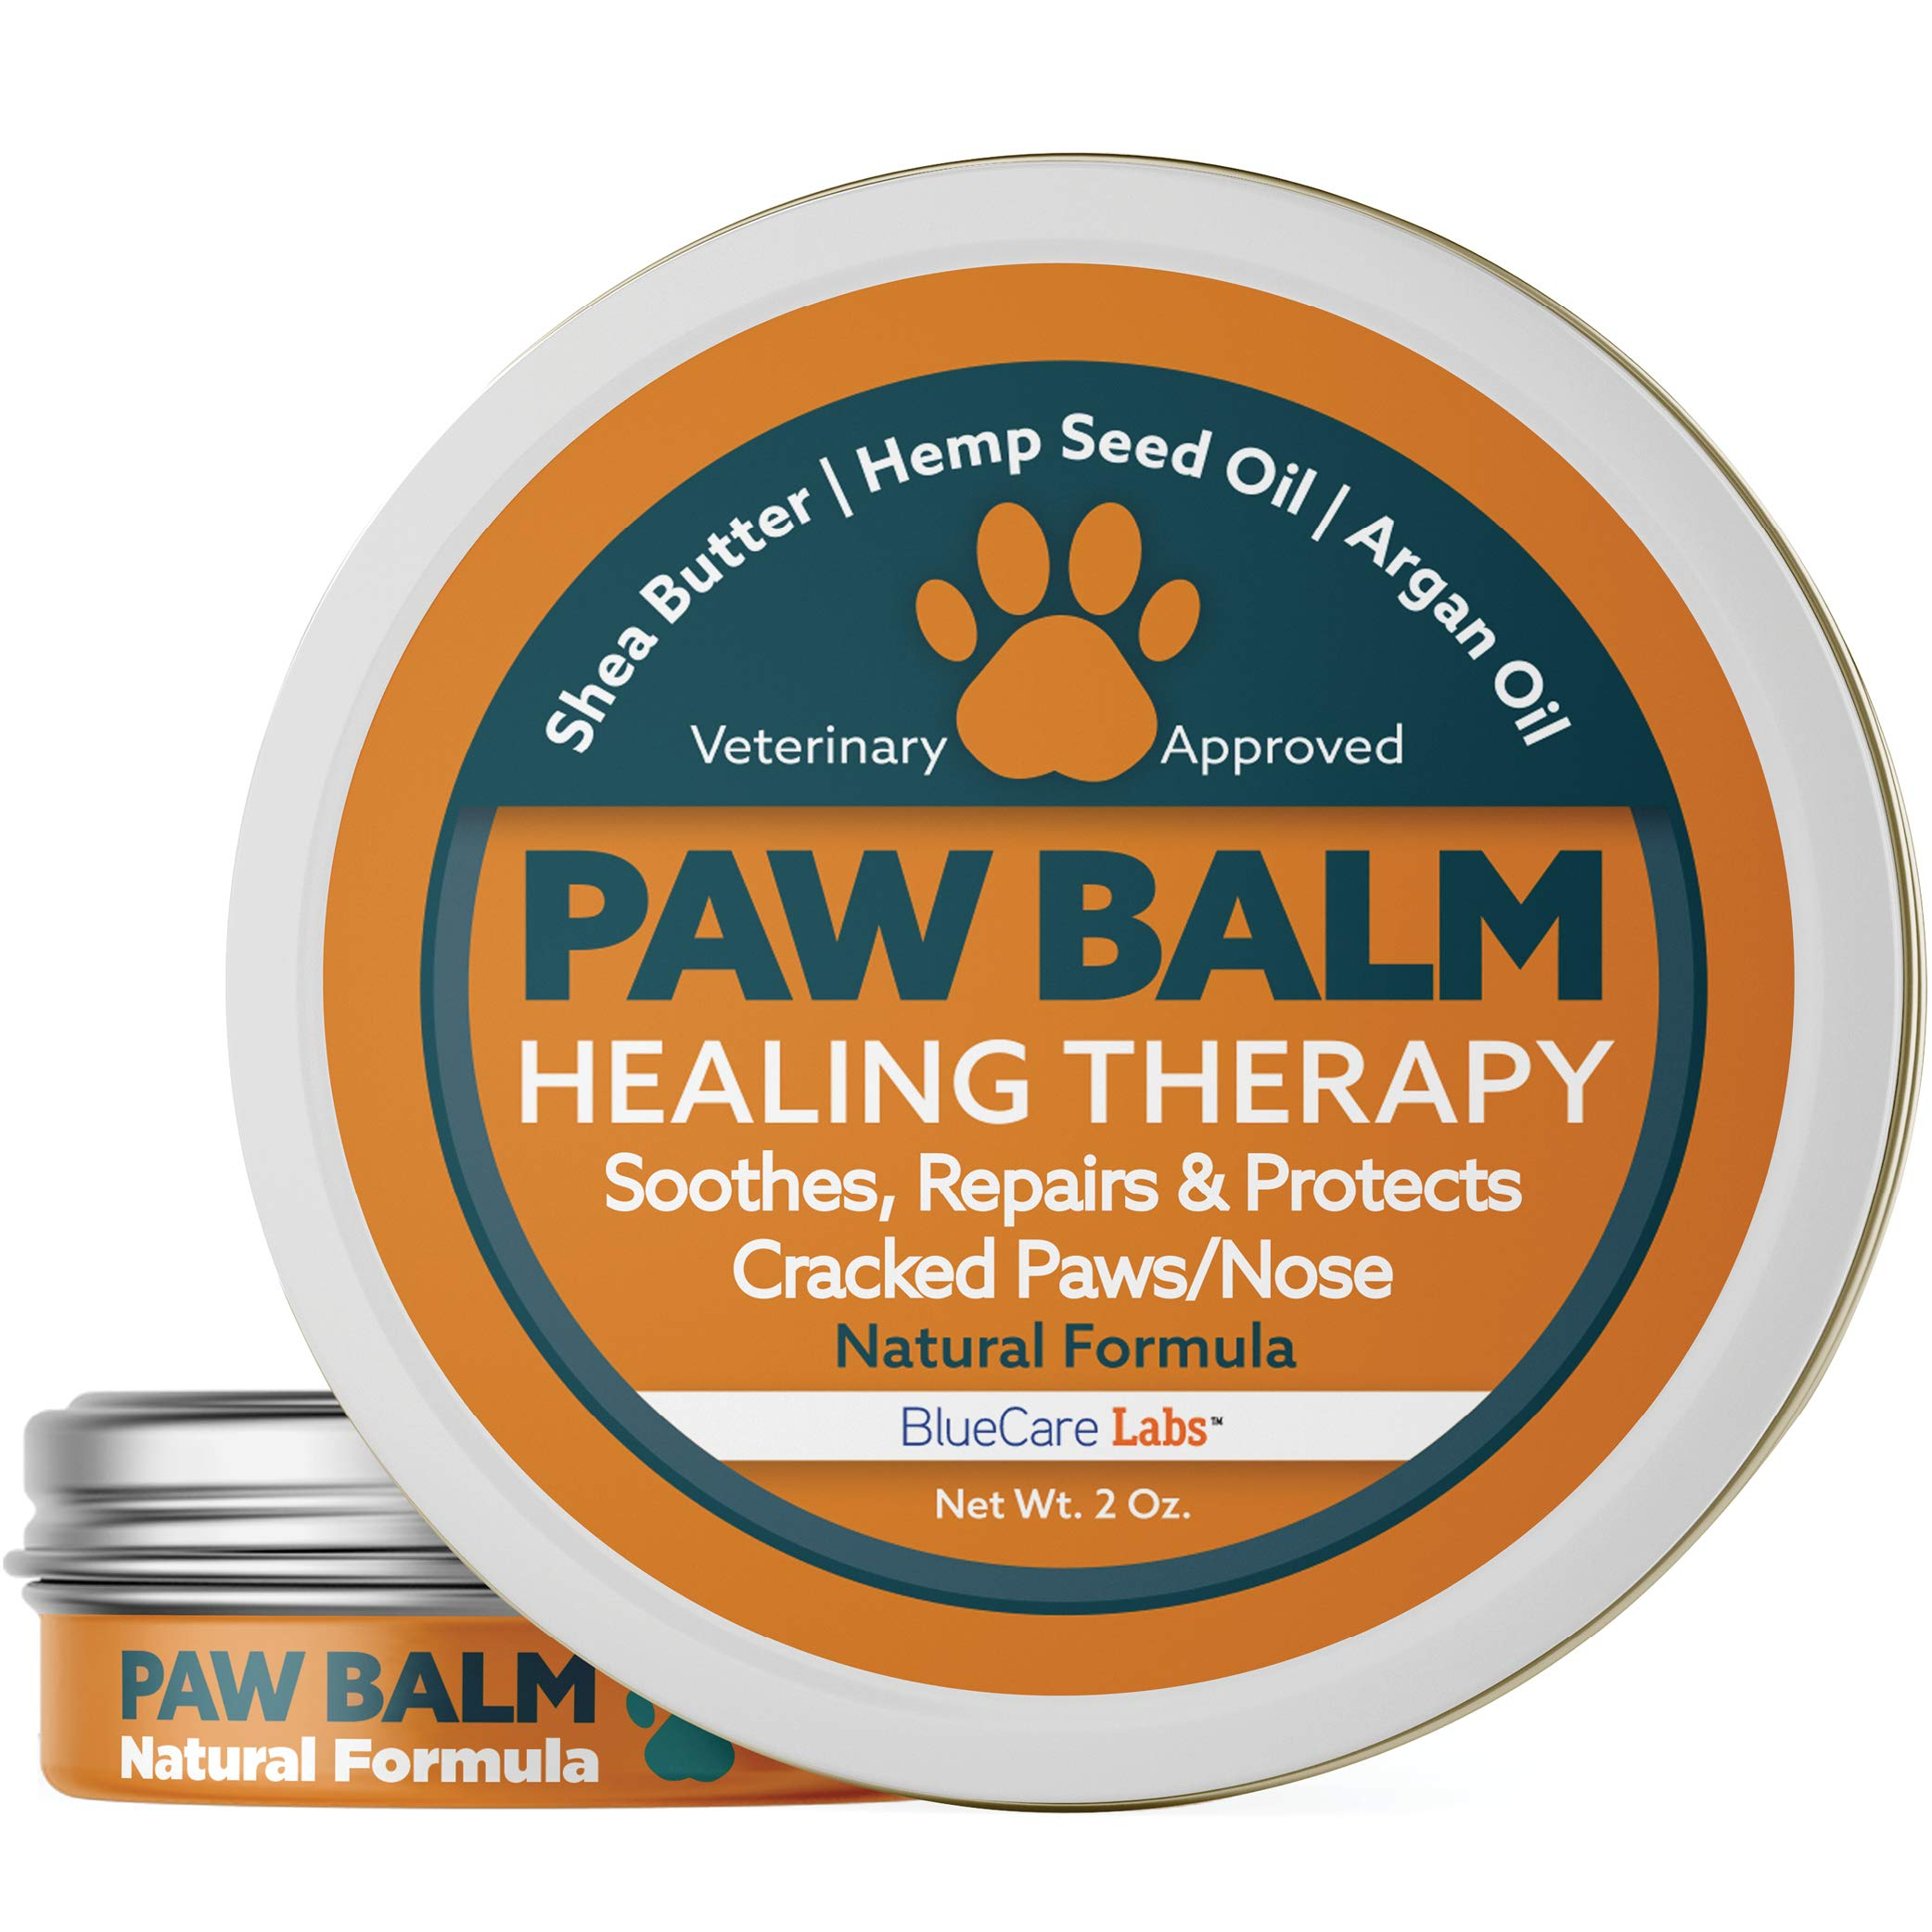 Paw Balm for Dogs and Cats Natural Paw Wax Protection Cracked Paw Repair Paw Moisturiser for Paw Pads Organic Healing Balm for Dog Paws Protects Dry and Chapped Paws Nose Feet Paw Care Made in the USA by BlueCare Labs